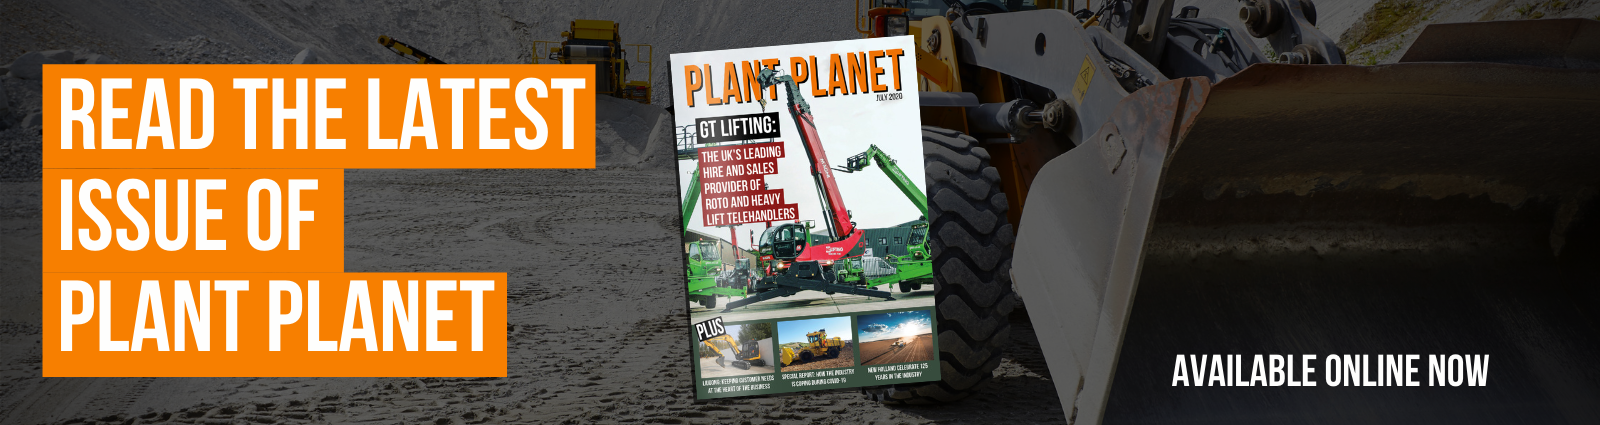 Read the July Issue of Plant Planet magazine